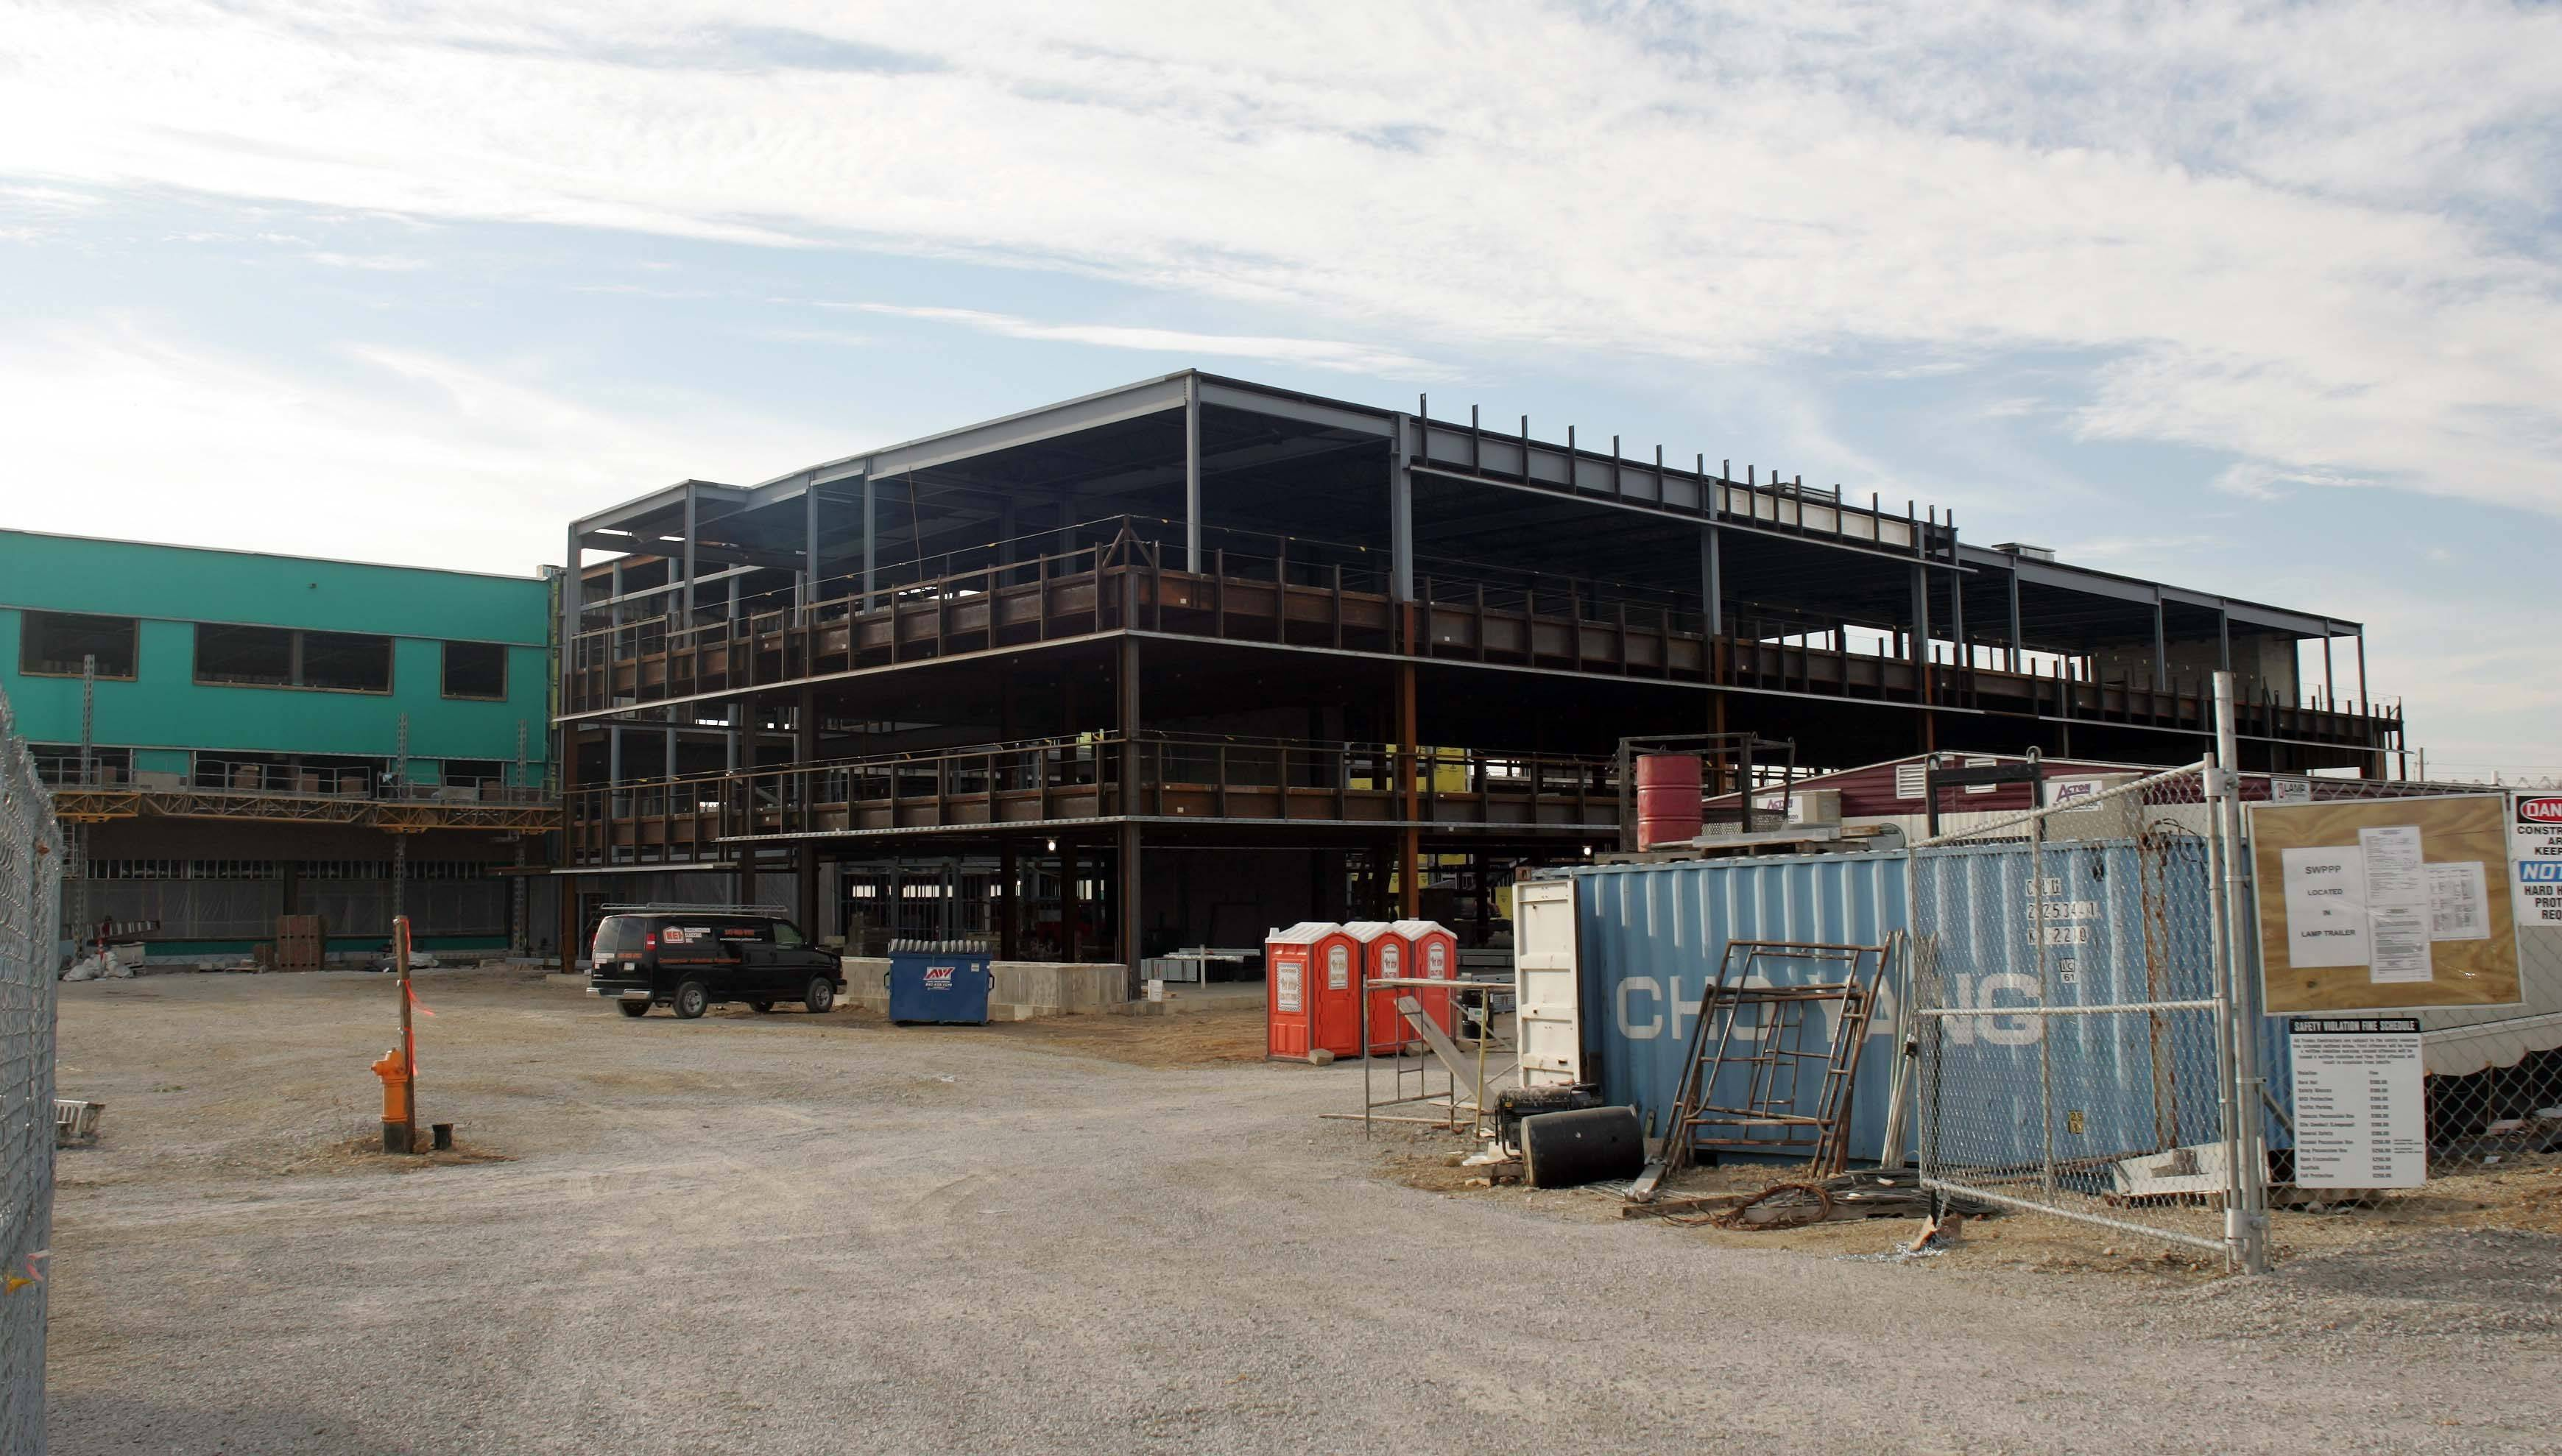 Elgin Community College is midway through a construction and renovation project that will create new study spaces, a new library and a new health careers center at the college's campus on the south end of Elgin.